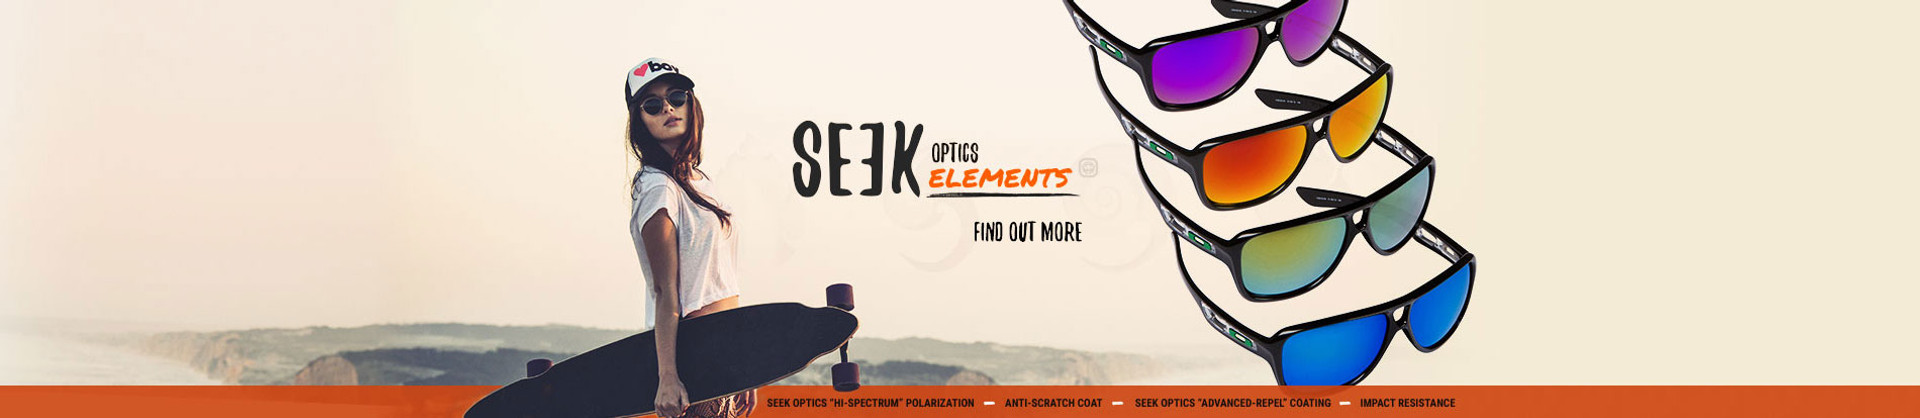 find out more about seek optics